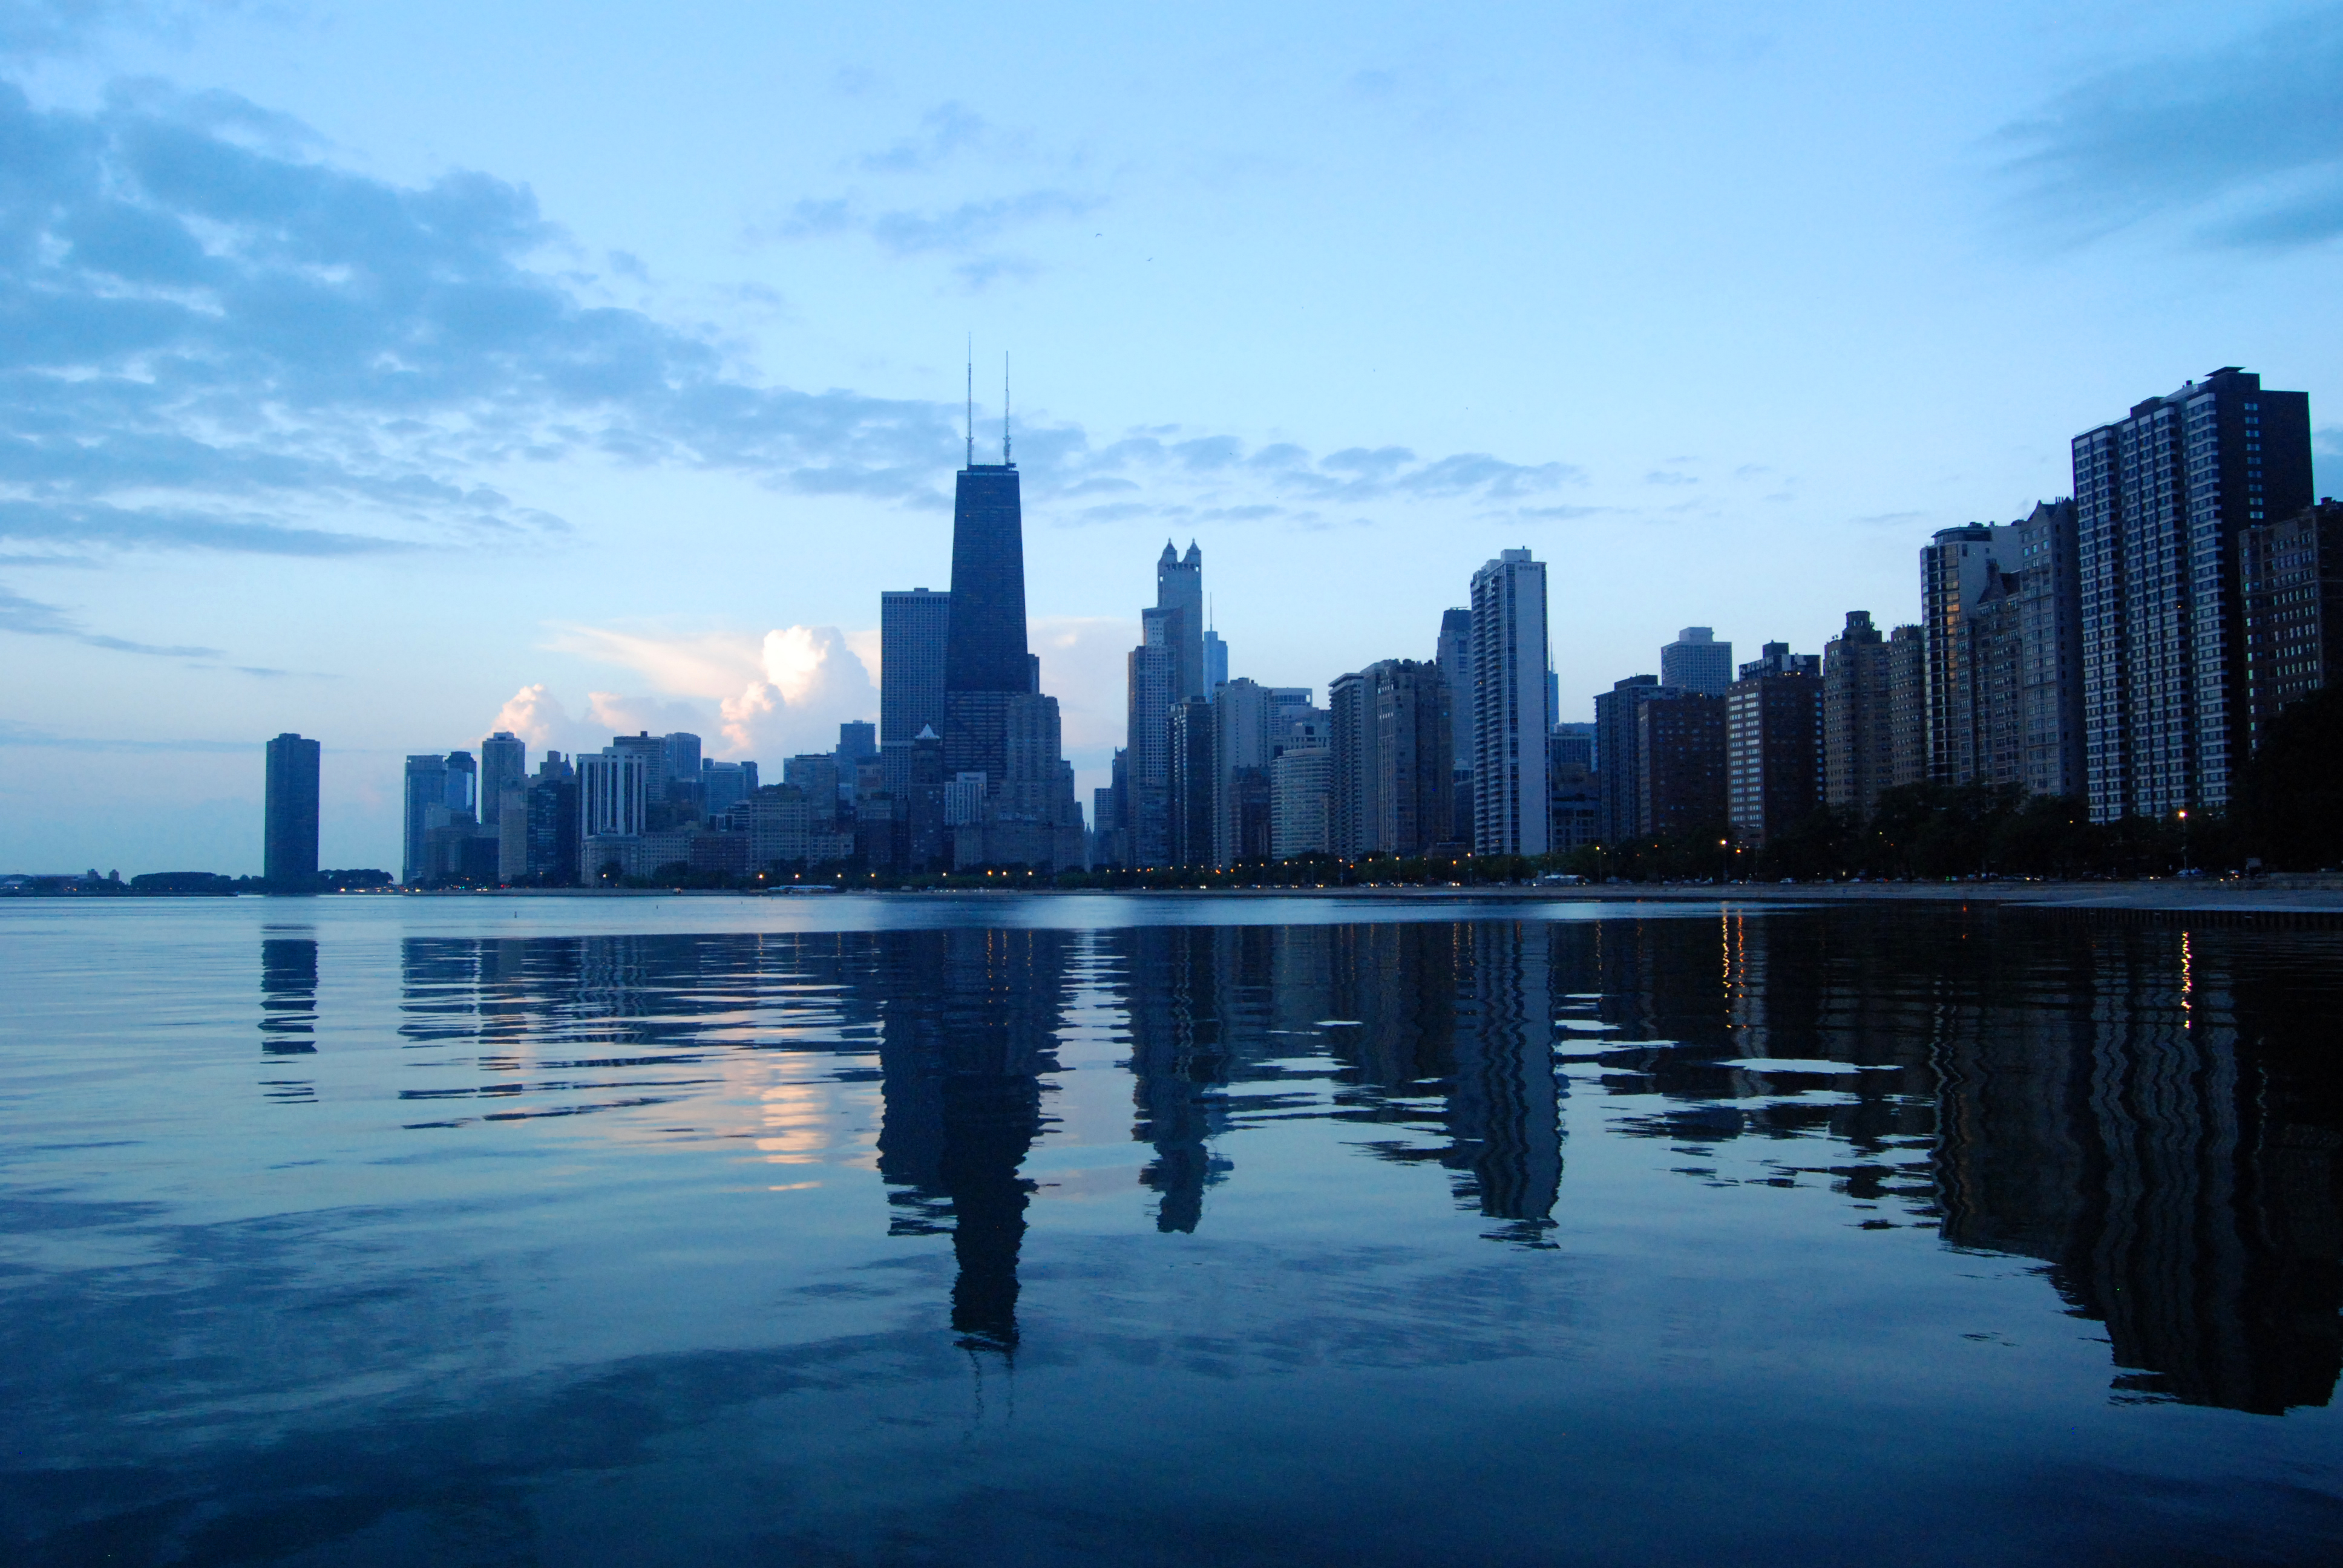 Lake Shore Drive Downtown Chicago Shore Looks Nice